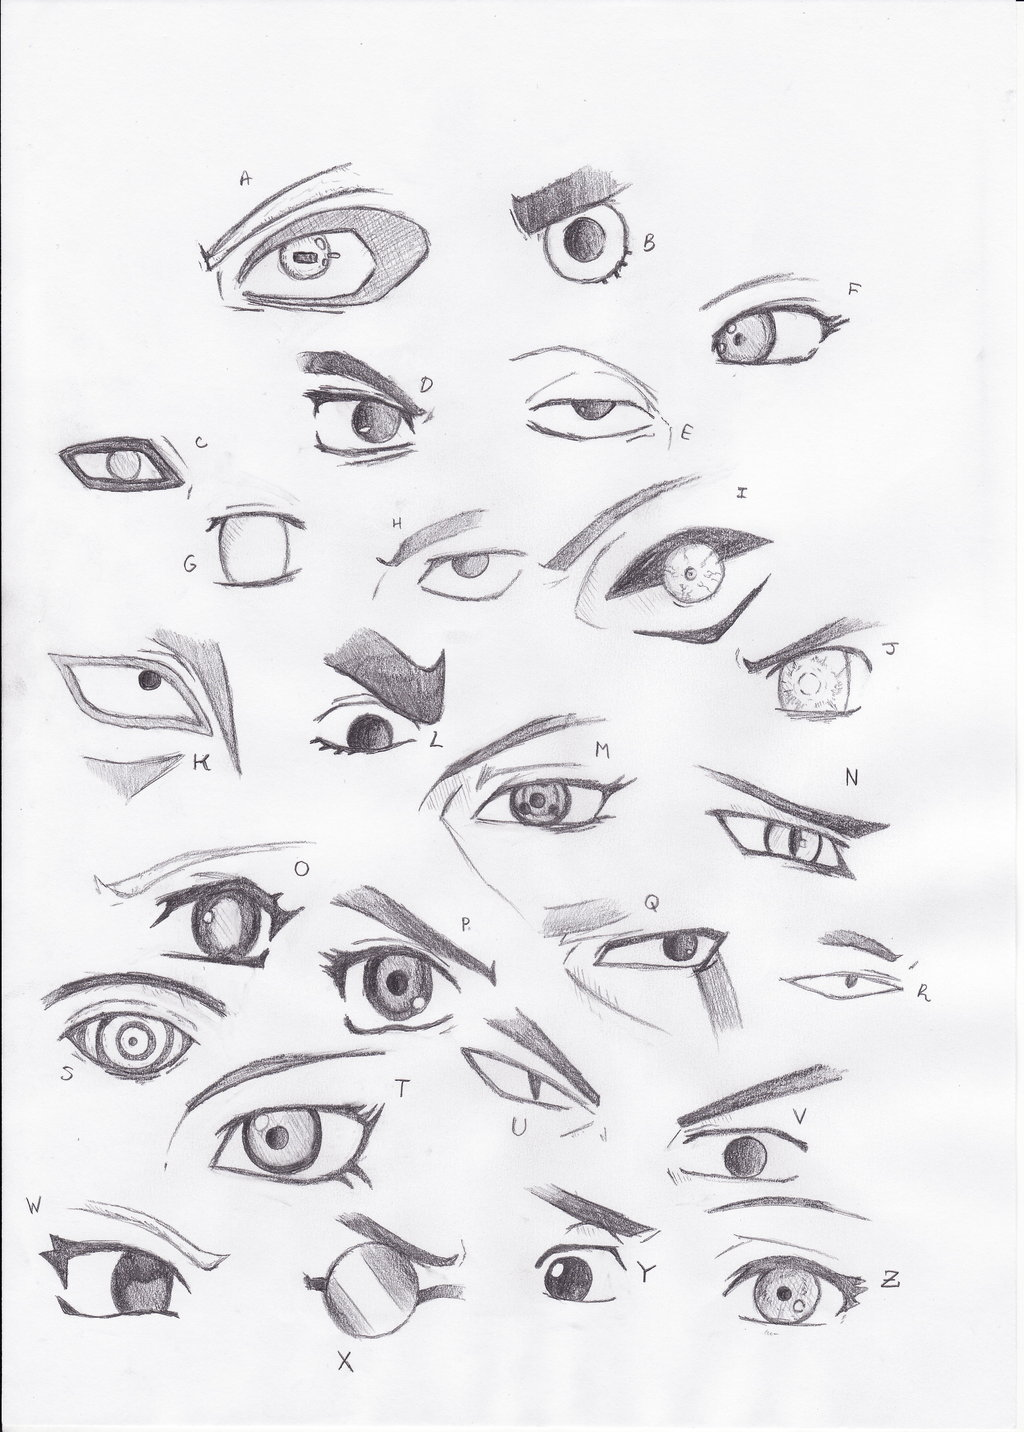 1024x1432 The Eyes of Naruto by Tomatem13 on DeviantArt